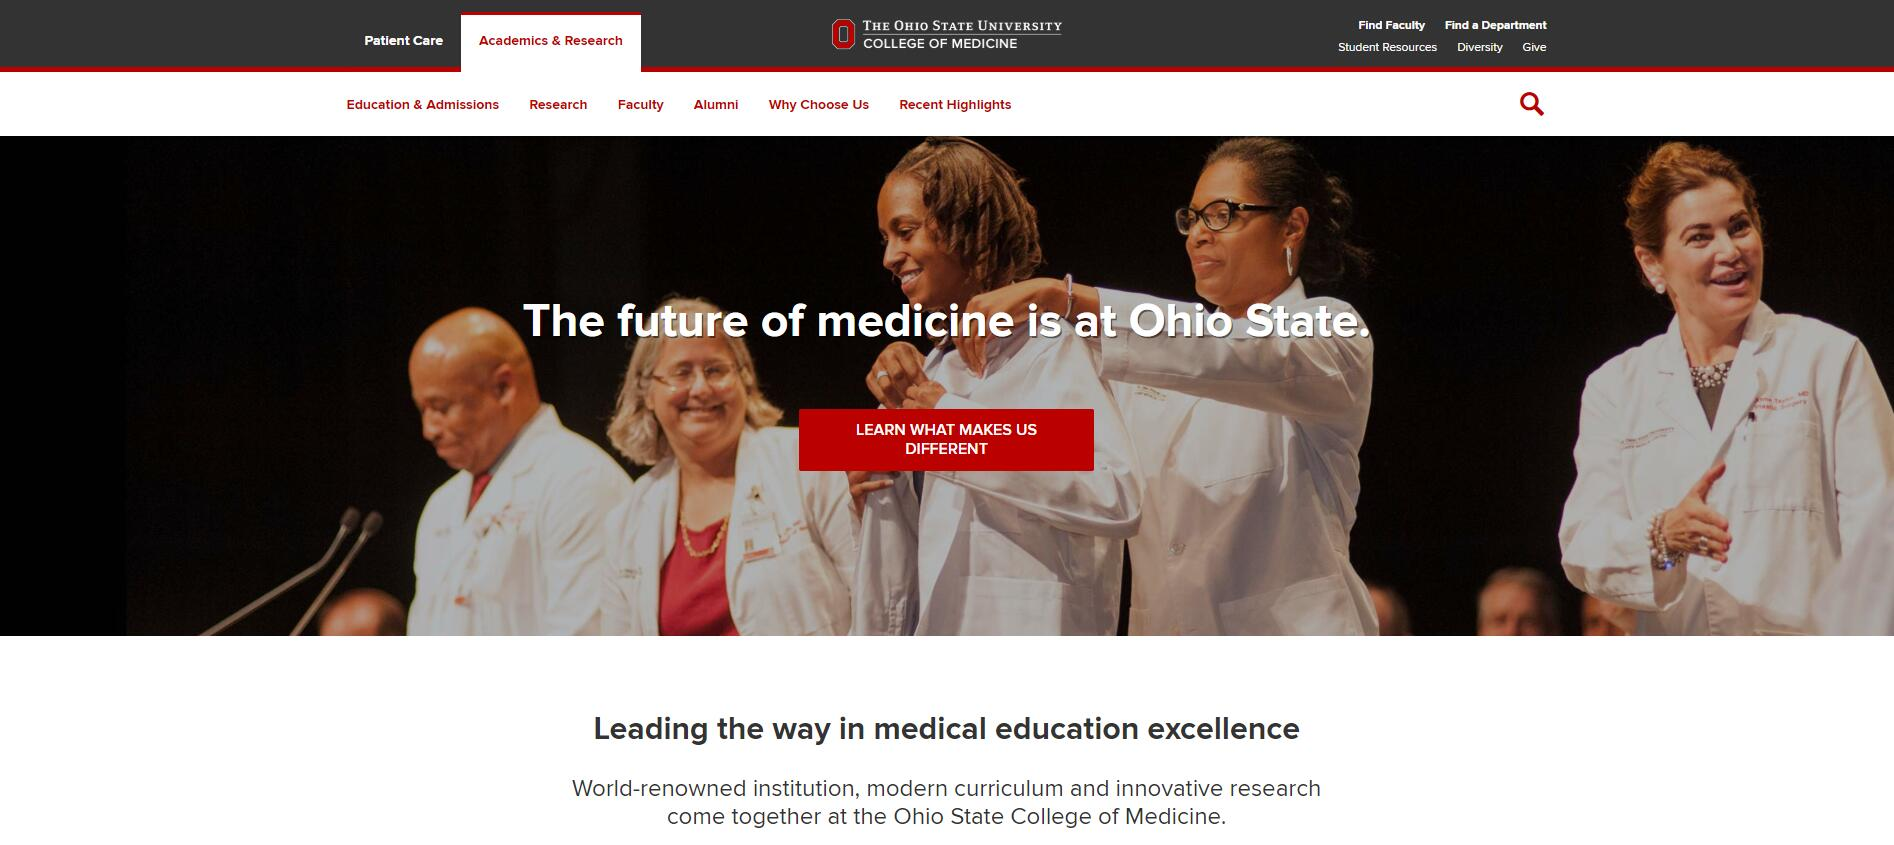 Ohio State University College of Medicine Admissions Statistics and Rankings